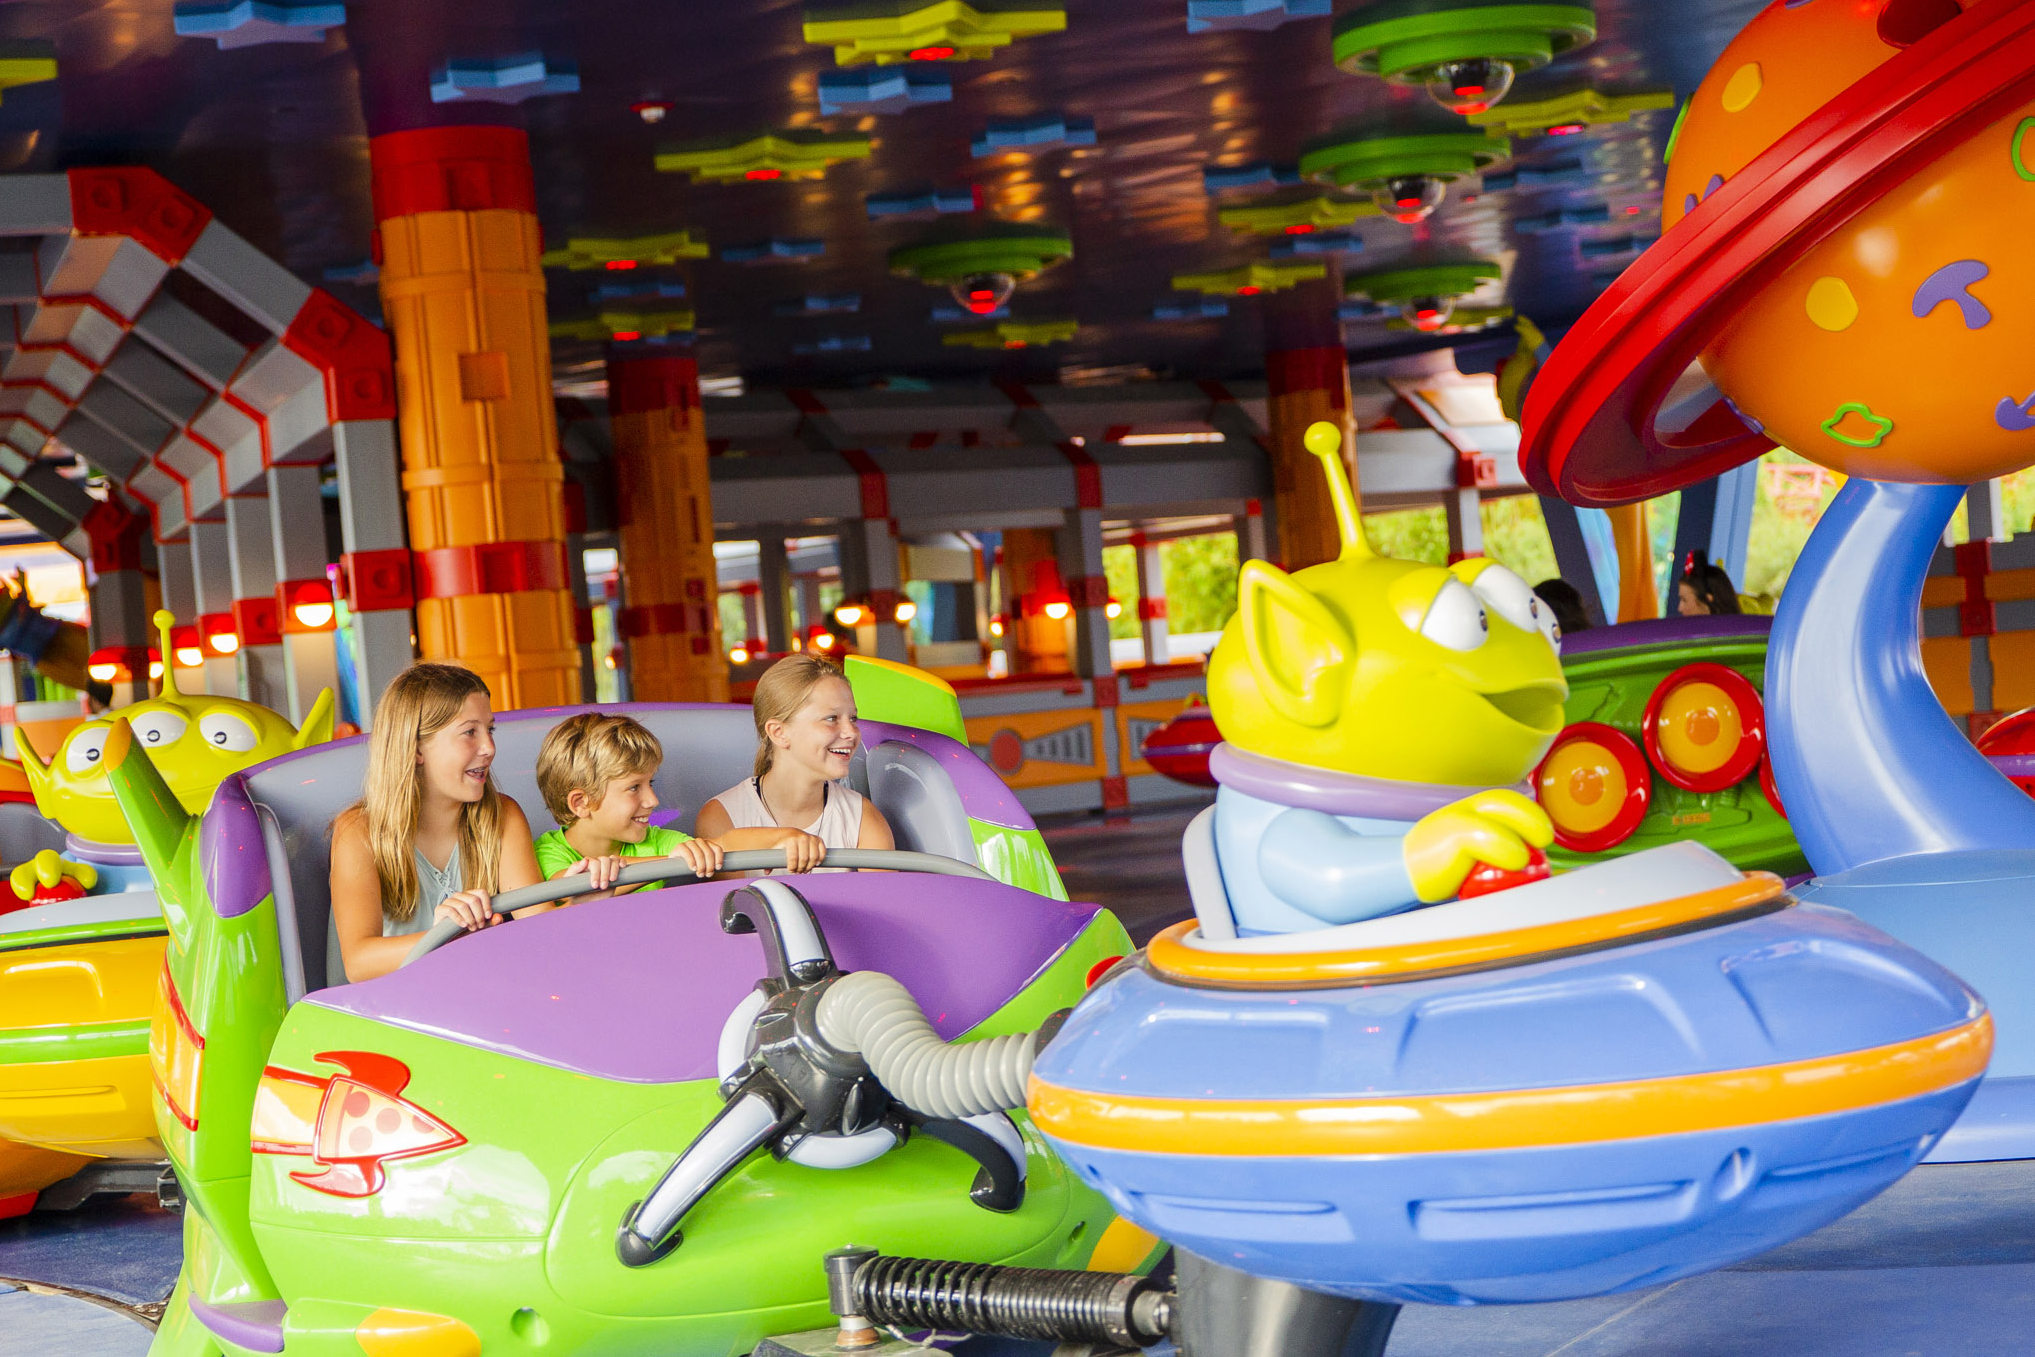 Alien Swirling Saucers ride